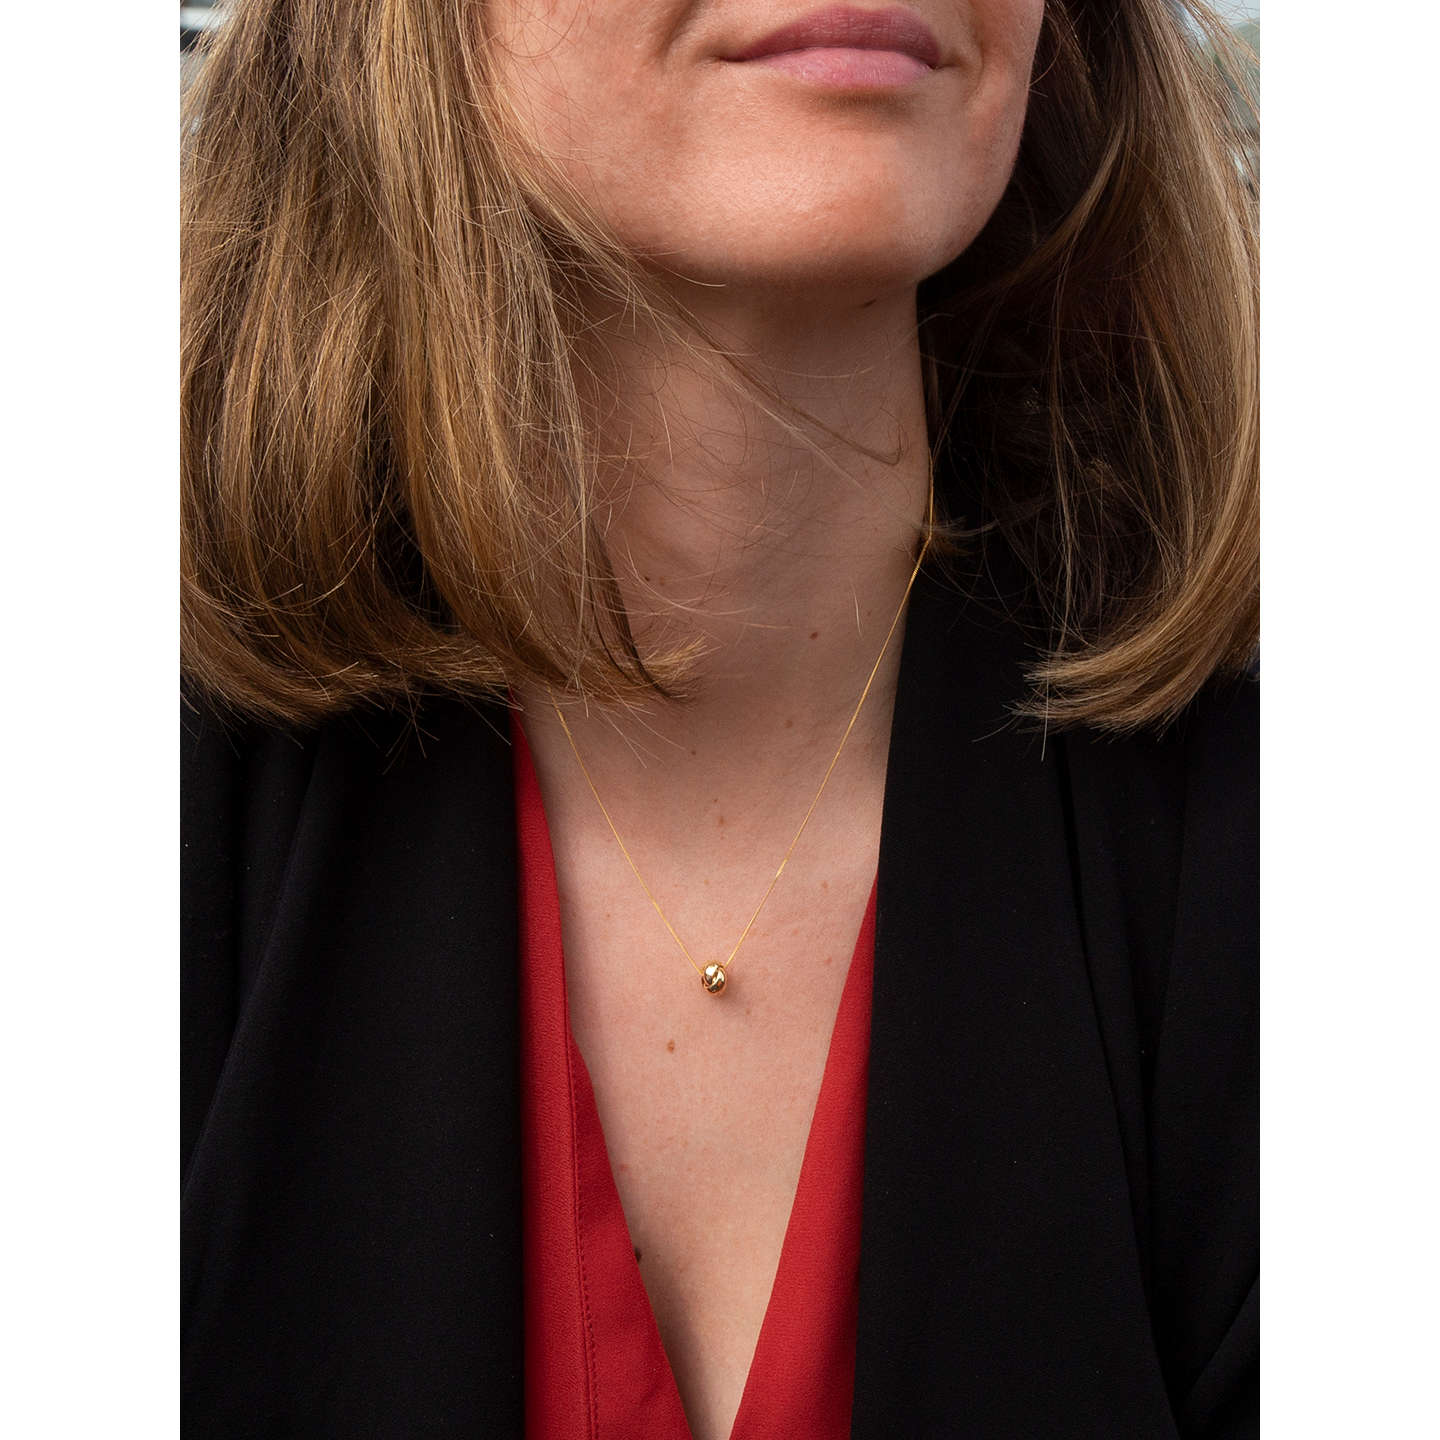 Ibb 9ct gold knot pendant yellow gold at john lewis buyibb 9ct gold knot pendant yellow gold online at johnlewis aloadofball Choice Image